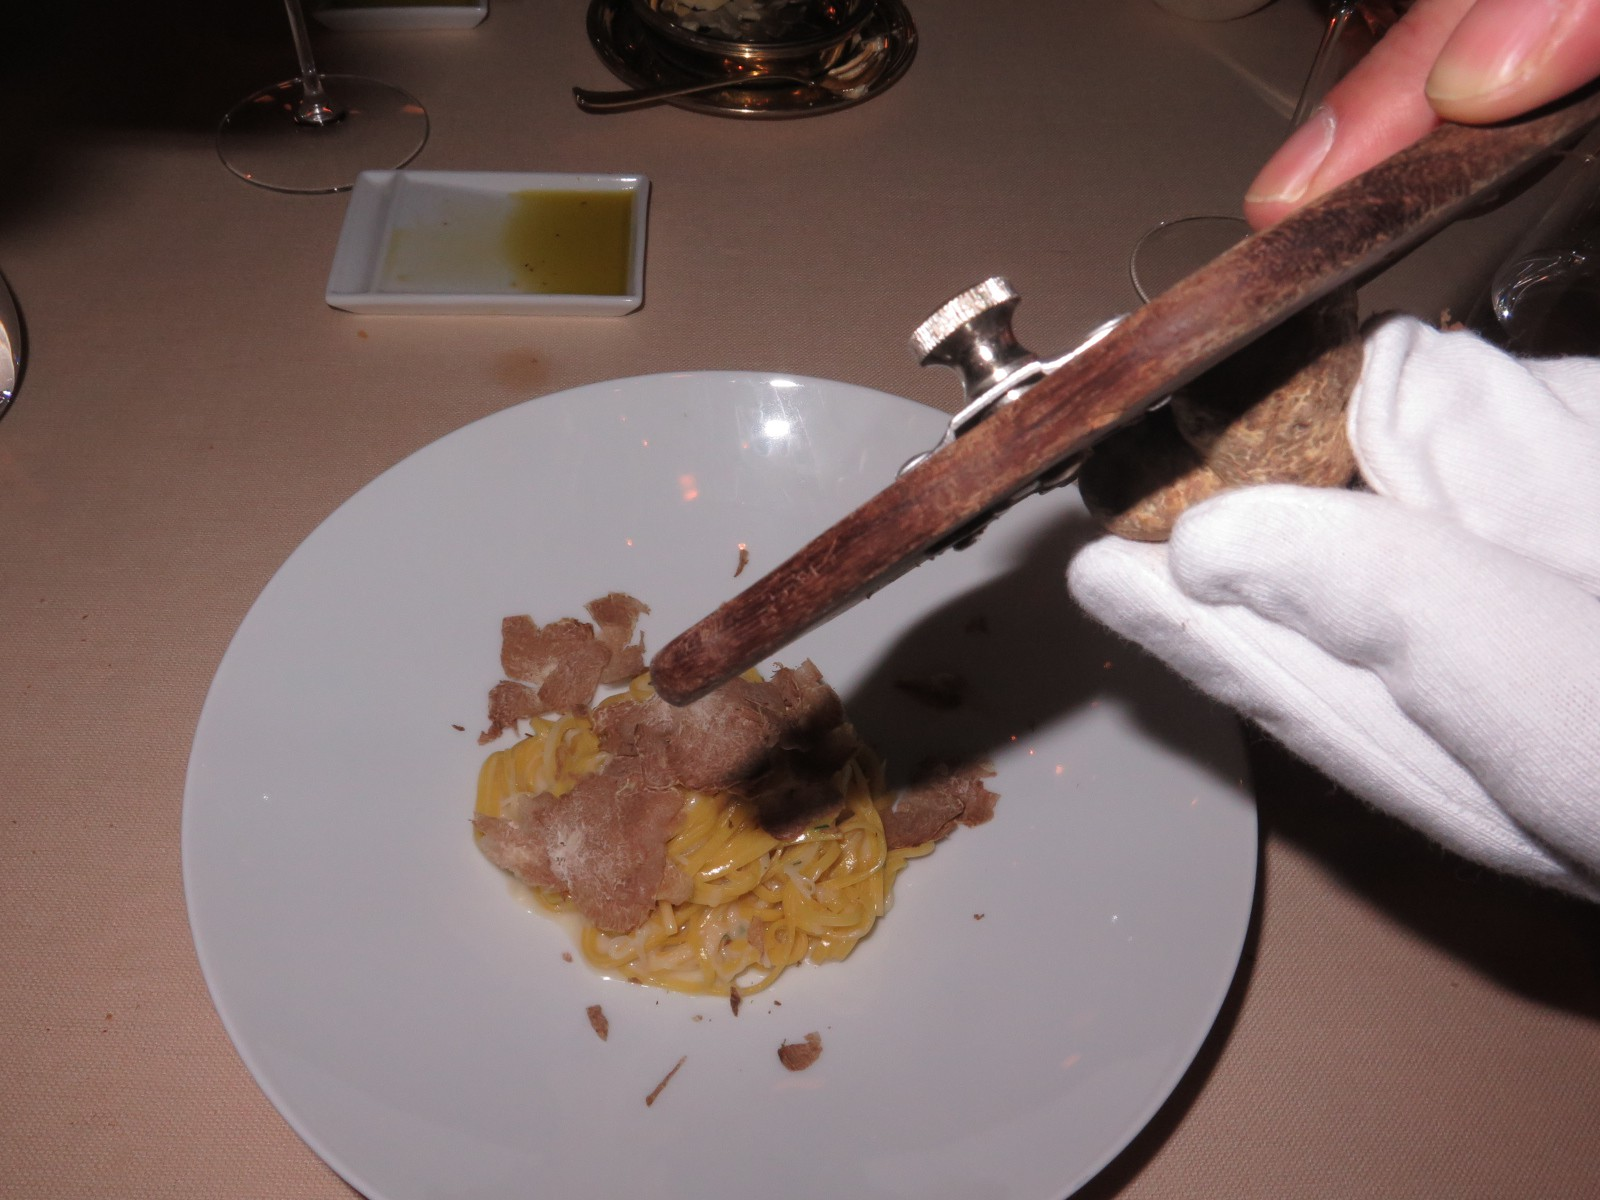 Tagliolini with black salsifies, chives and with truffle from Alba